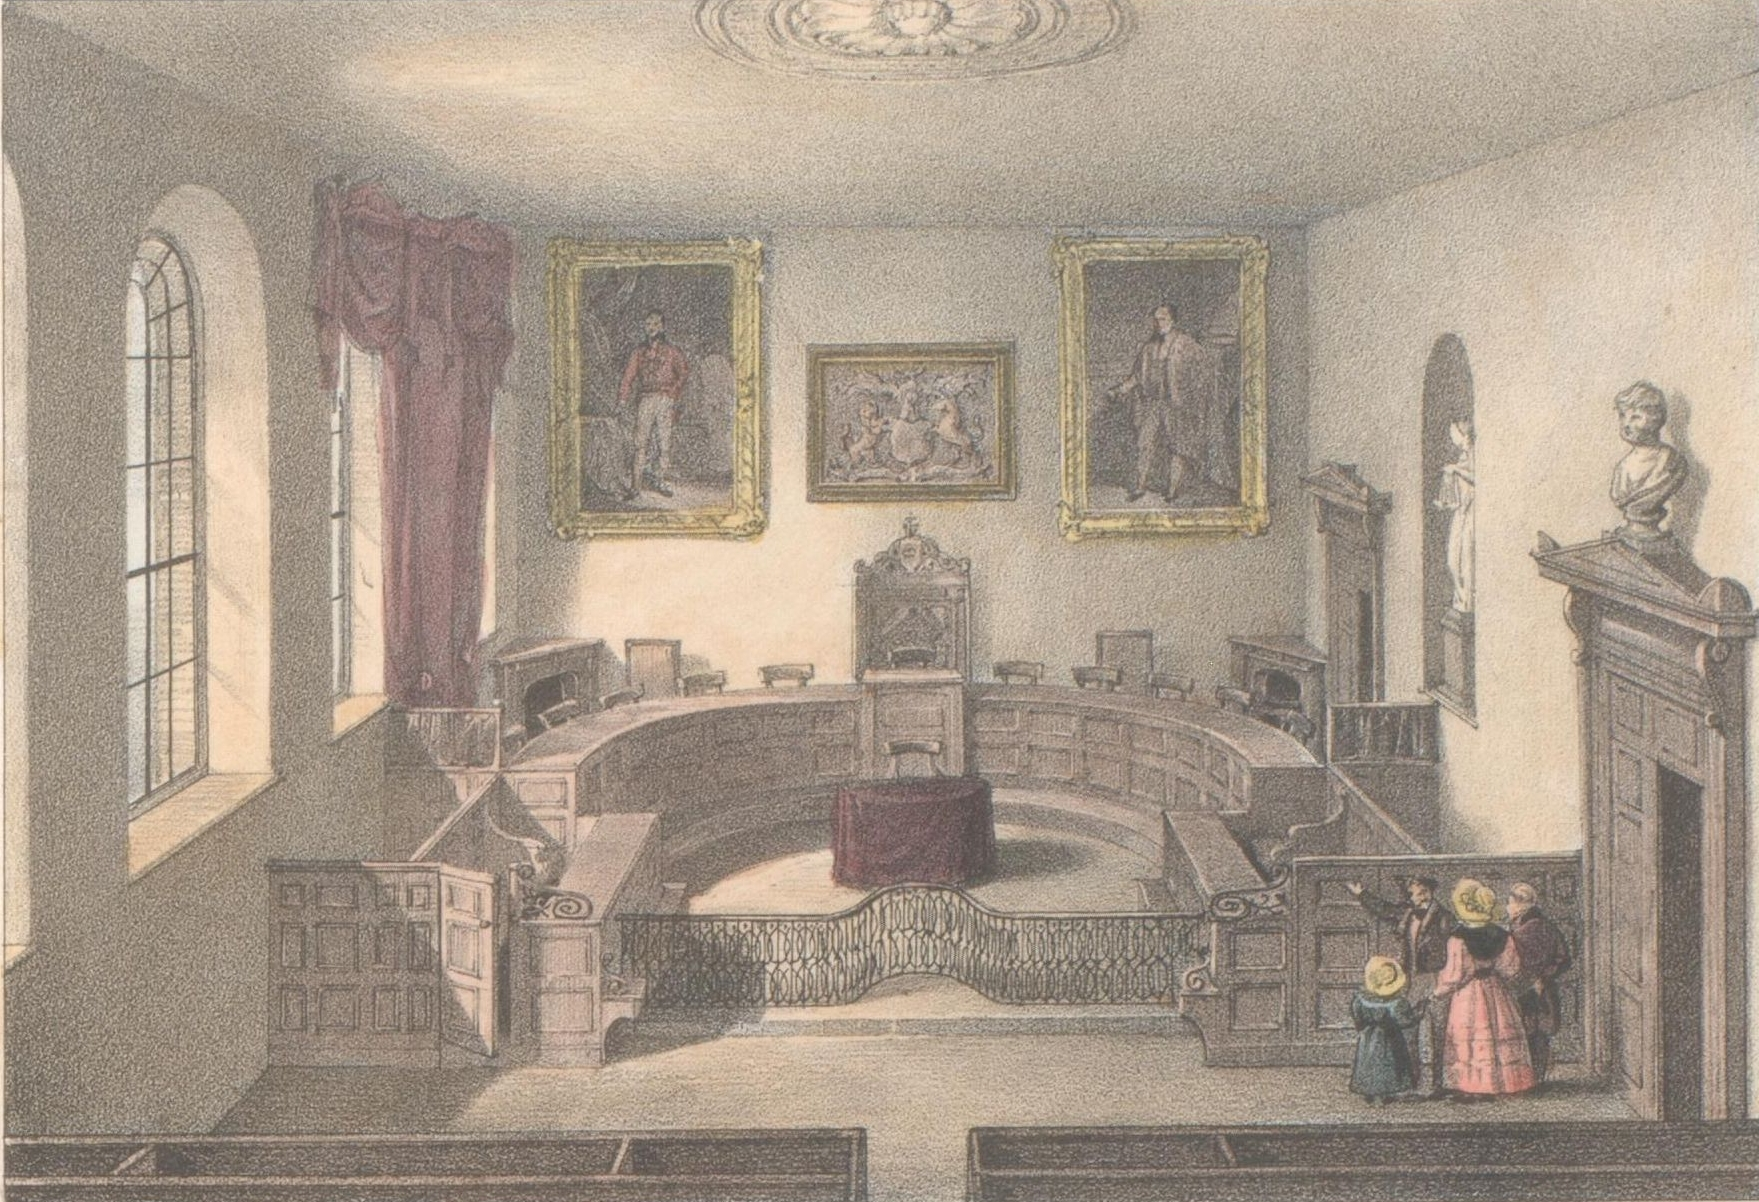 Interior of Royal Court drawn by De Garis Pubd by M Moss Priaulx Library Collection